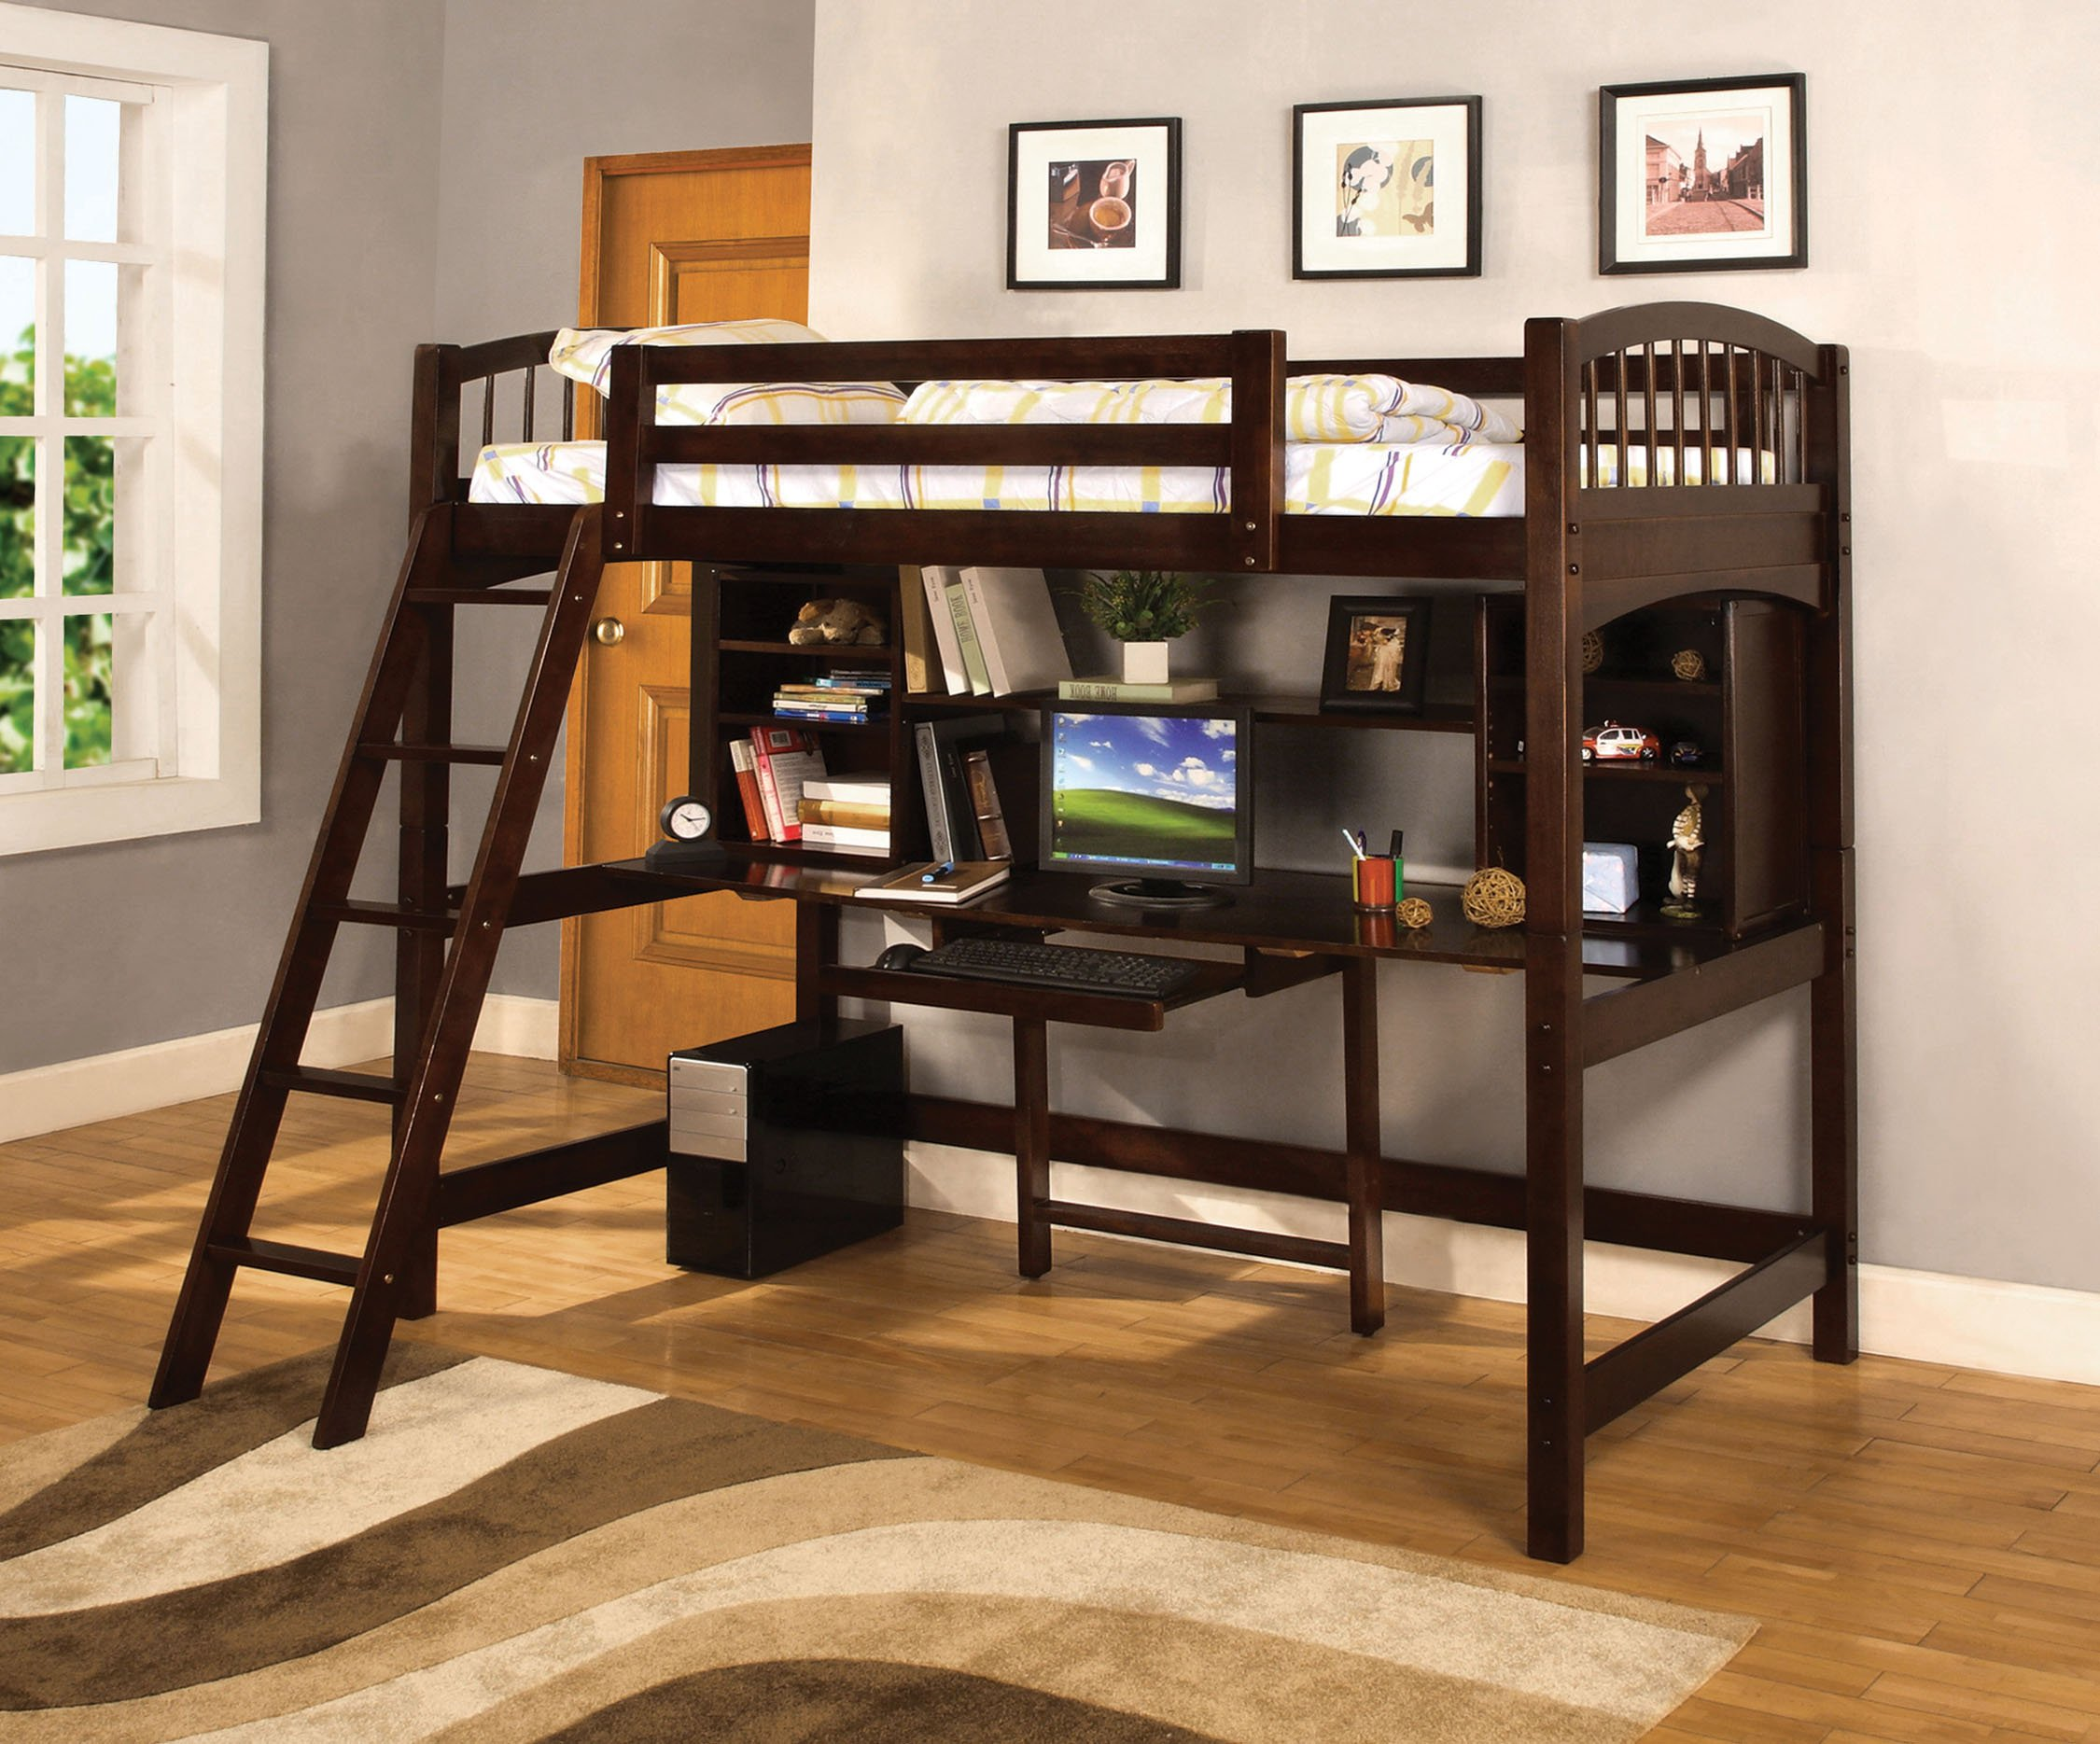 Furniture of America Ashby Twin Loft Bed with Workstation, Espresso by Furniture of America